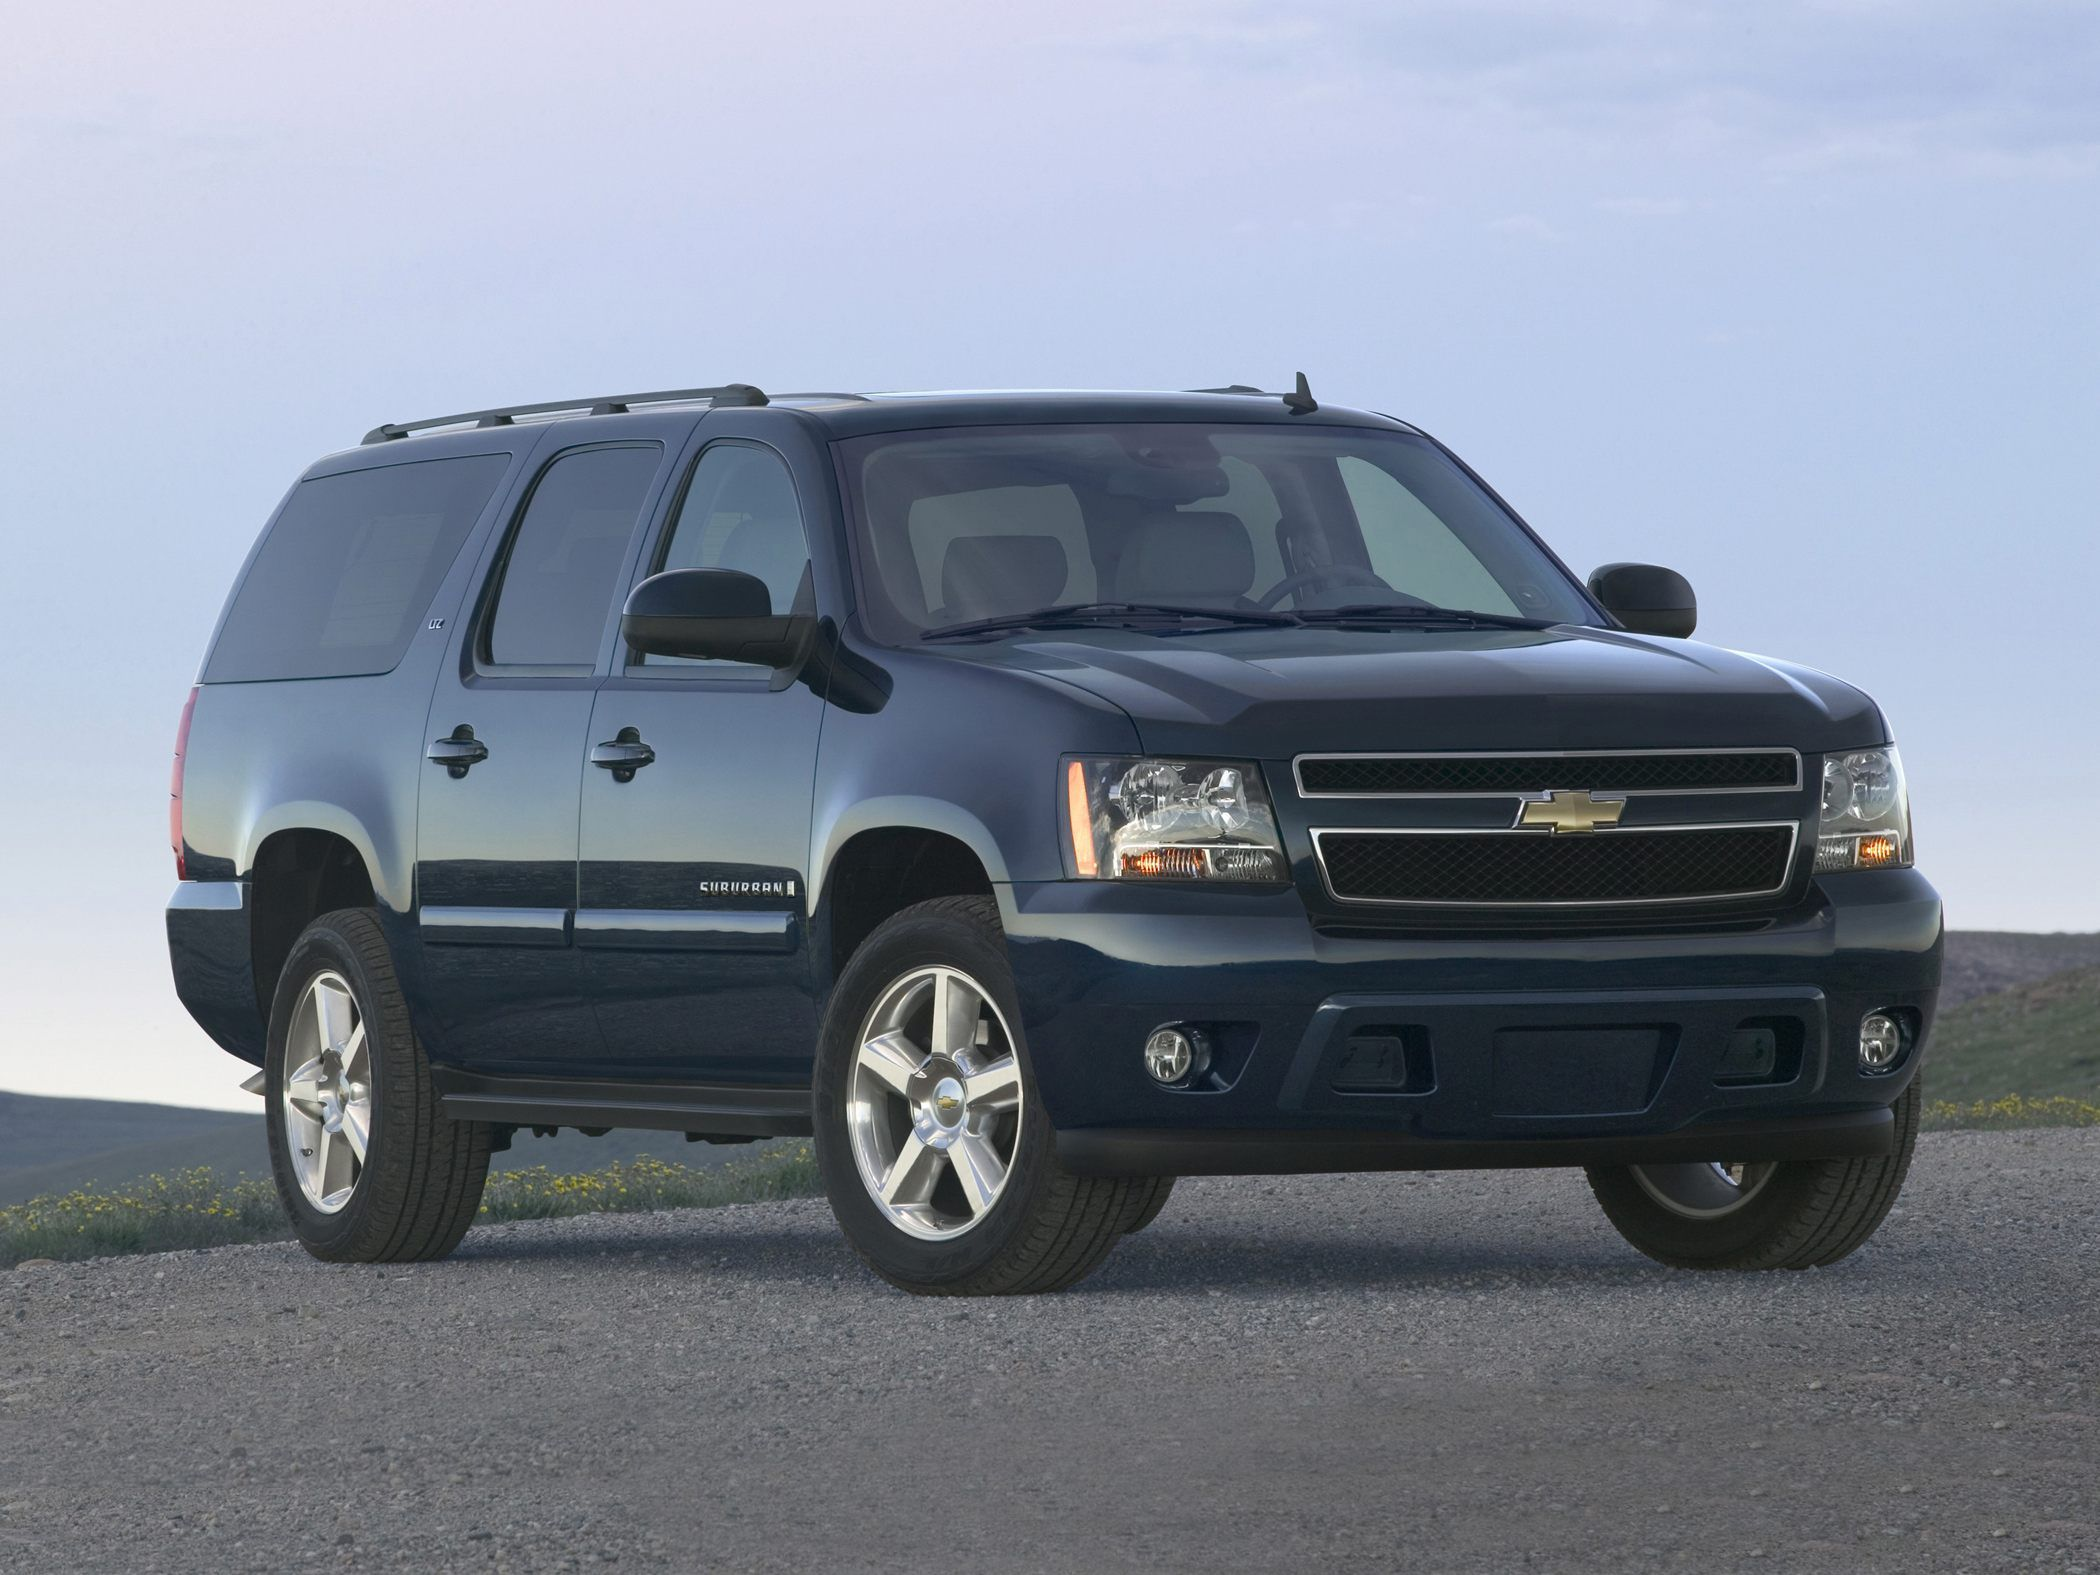 Lifted Ford Trucks Twitter Gmcguys Chevrolet Suburban Autos Deportivos Camiones Chevrolet